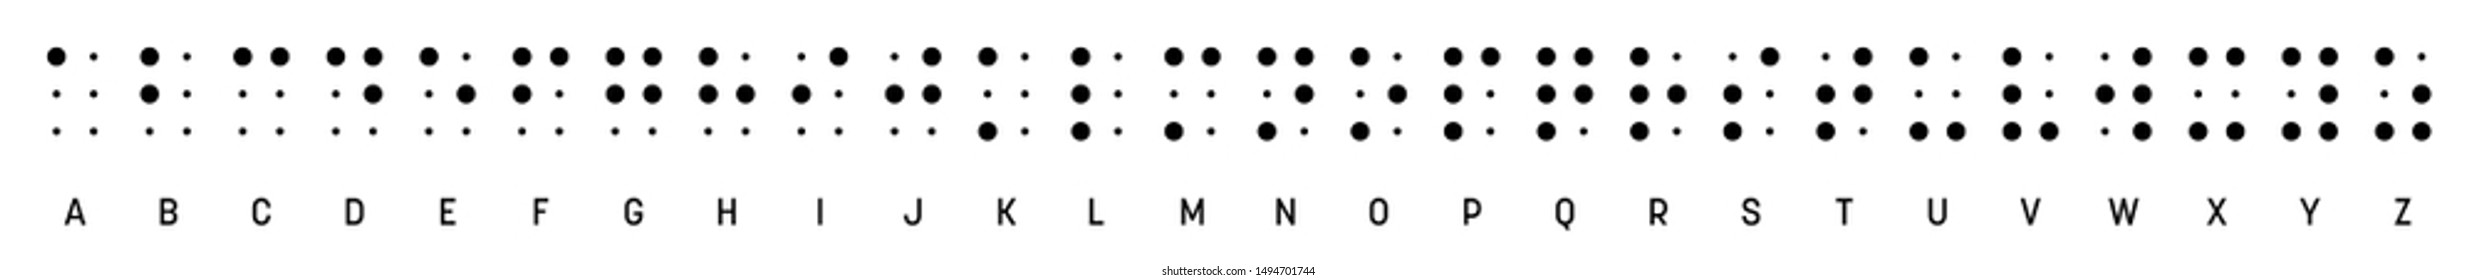 Braille alphabet letters in a row. Braille is a tactile writing system used by blind or visually impaired people. Vector illustration in black and white.